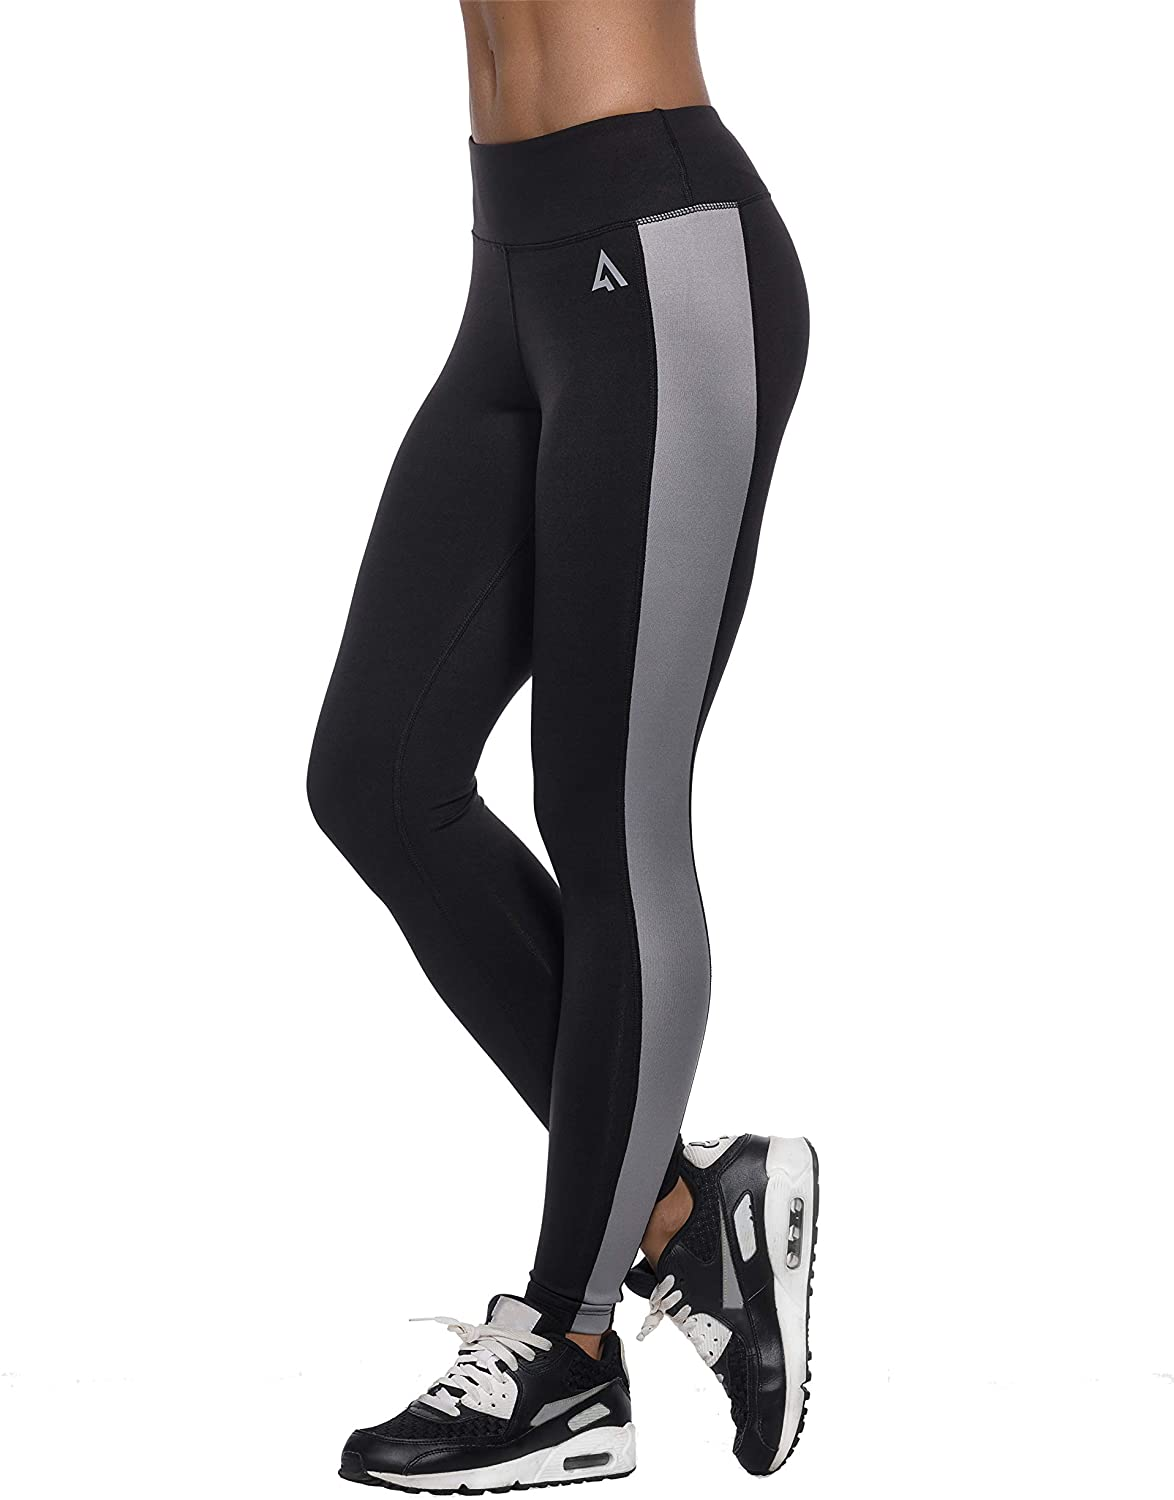 Premium USA Sports Leggings for Women | for Active & Relaxing Workout Activities Black/Grey